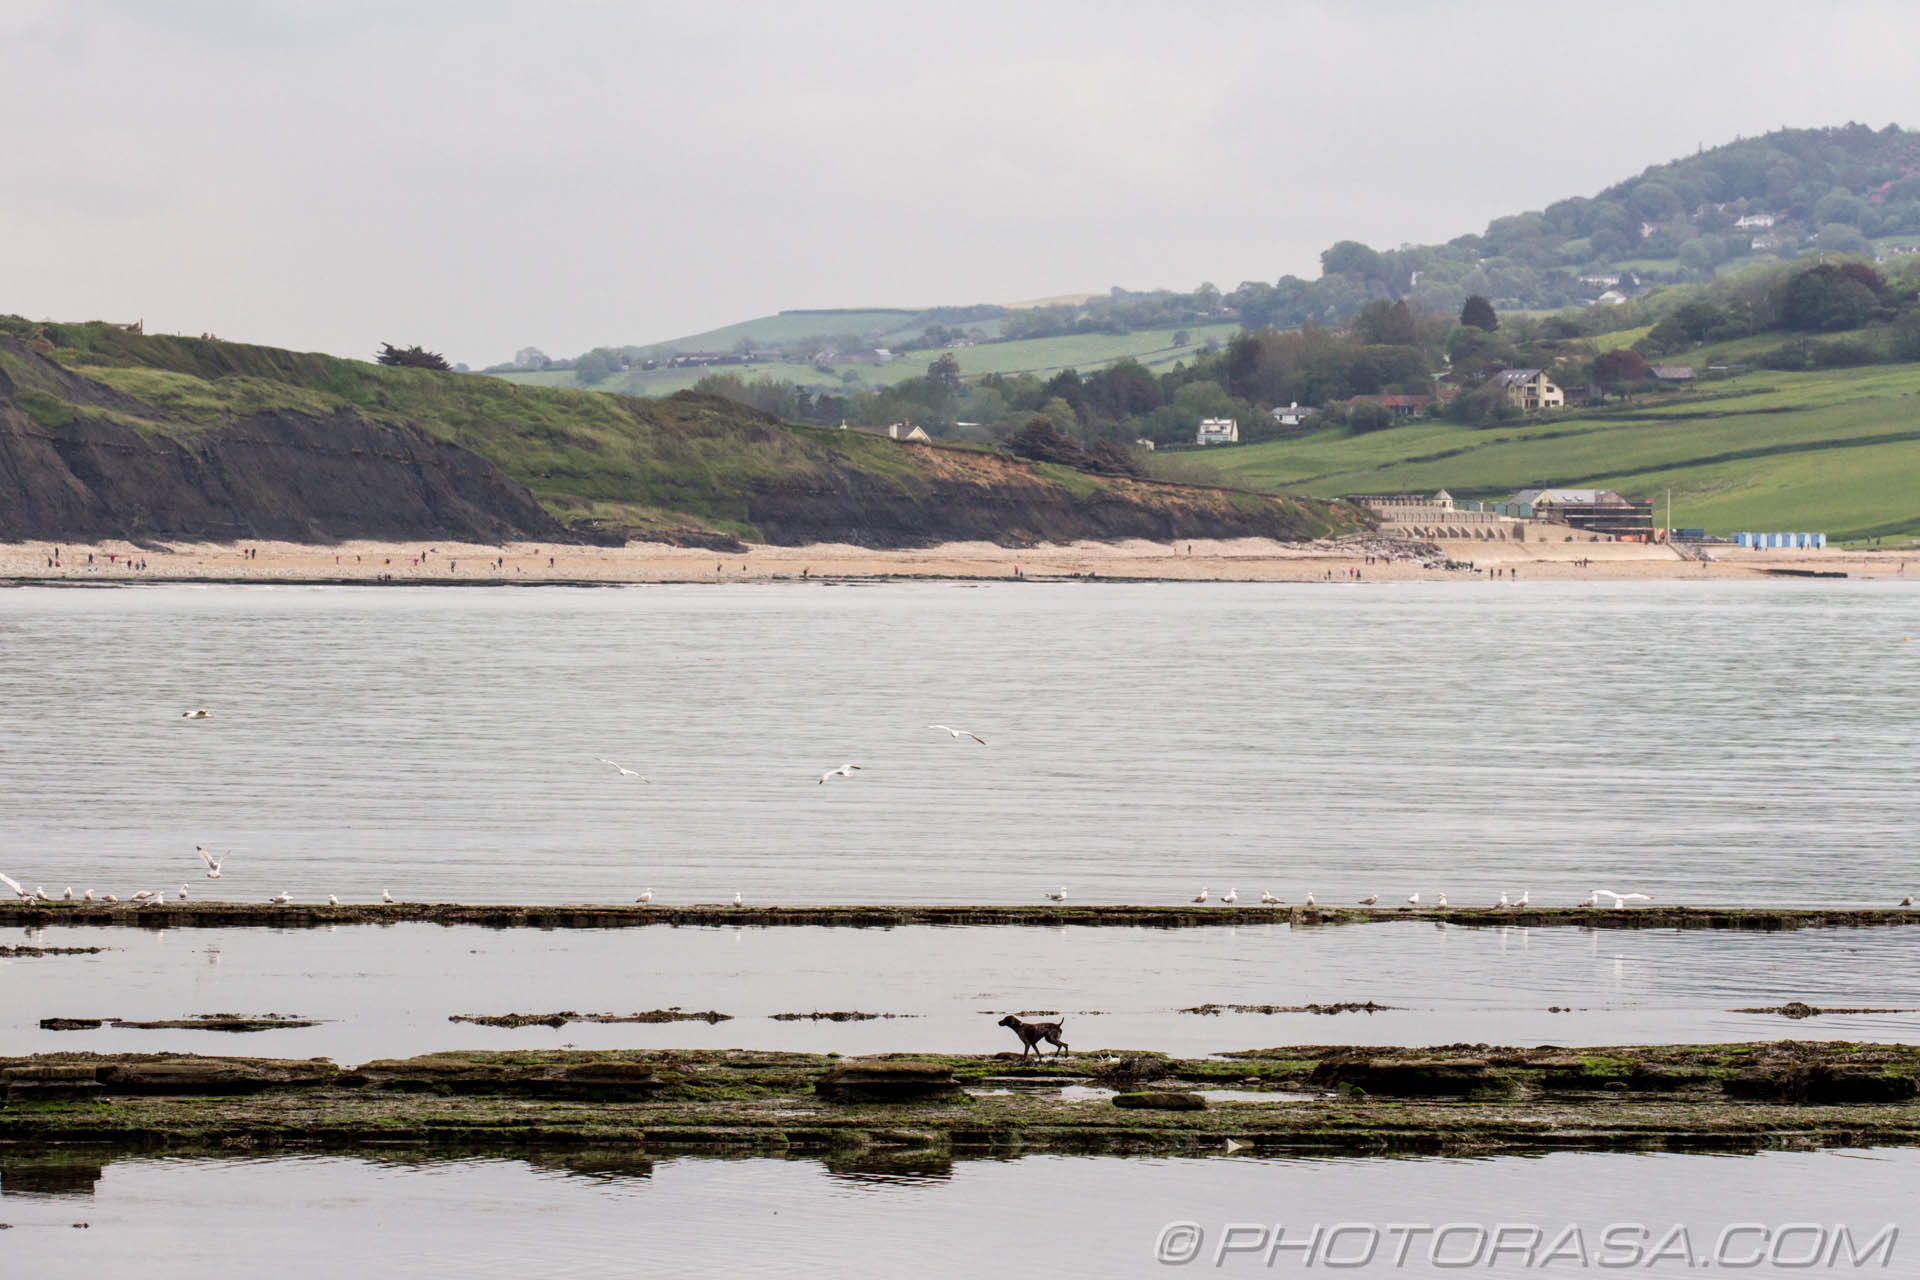 http://photorasa.com/walking-dog-jurassic-coast/galloping-across-the-water/